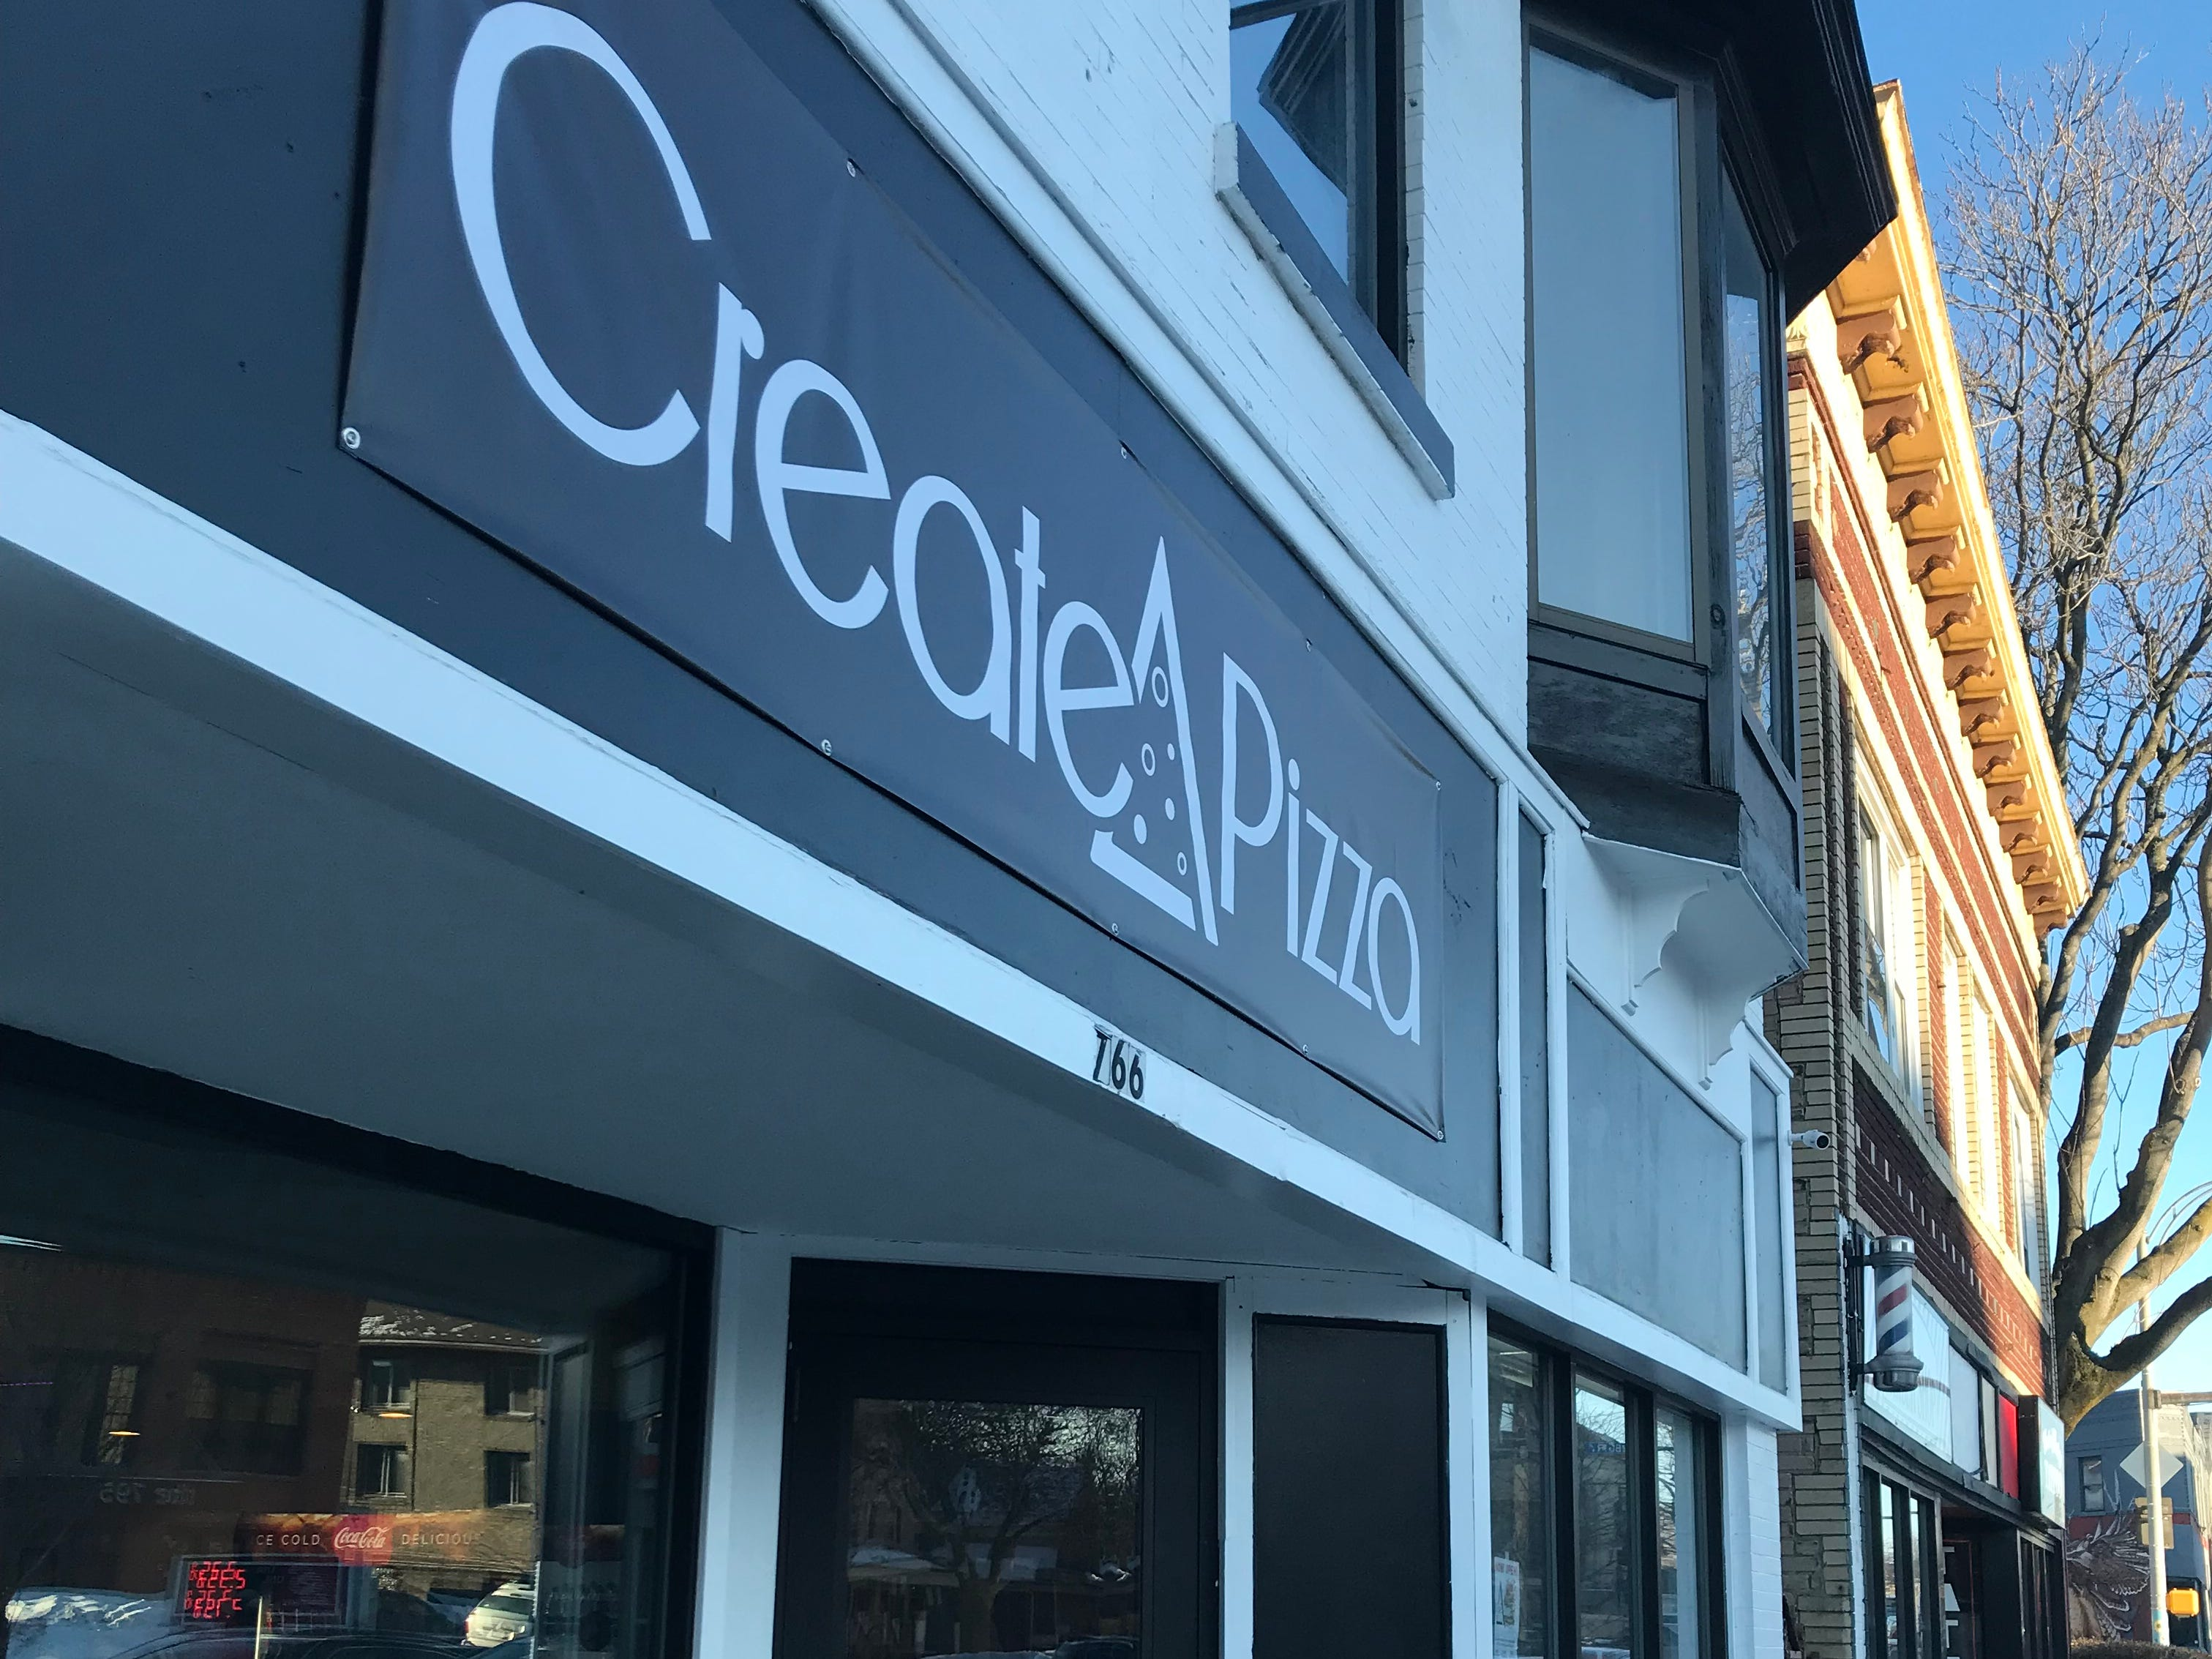 Create A Pizza is at 766 Monroe Ave.